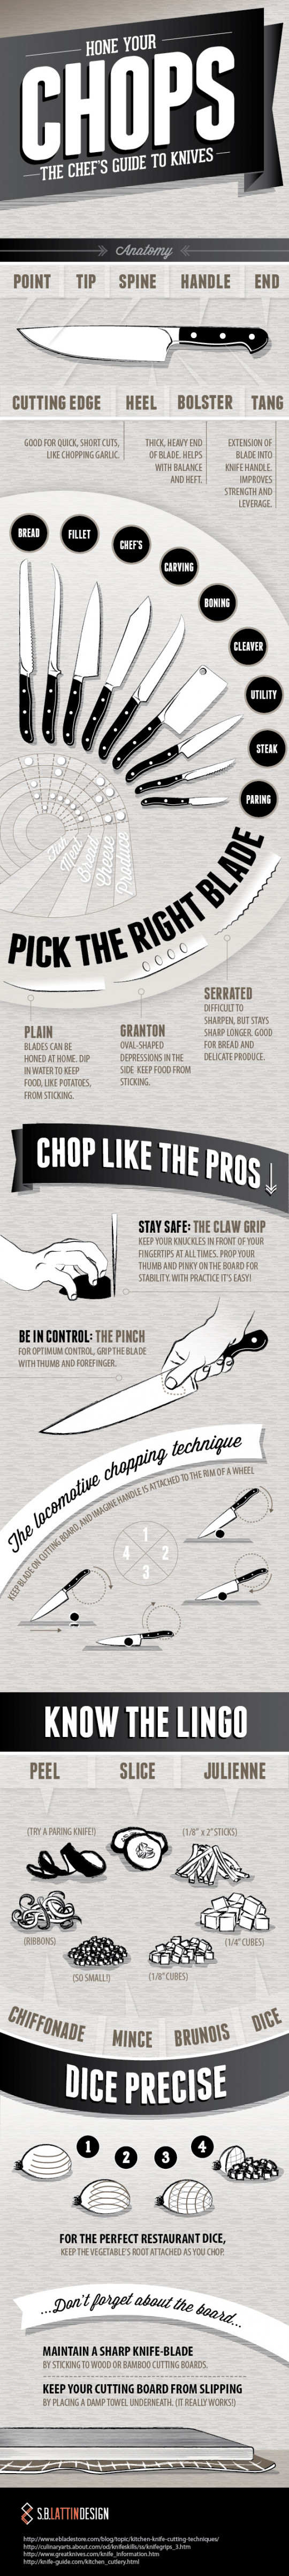 Hone Your Chops: The Chef